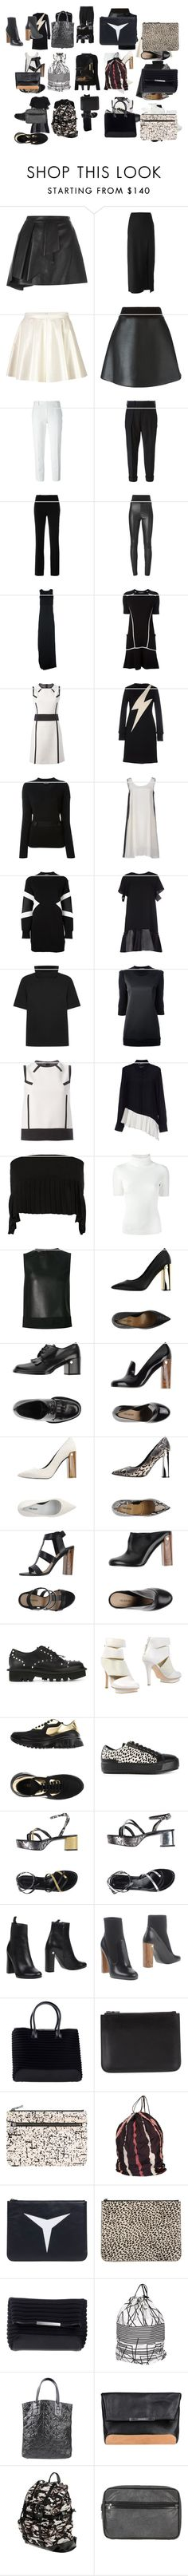 """Untitled #3350"" by luciana-boneca on Polyvore featuring Neil Barrett, women's clothing, women's fashion, women, female, woman, misses and juniors"